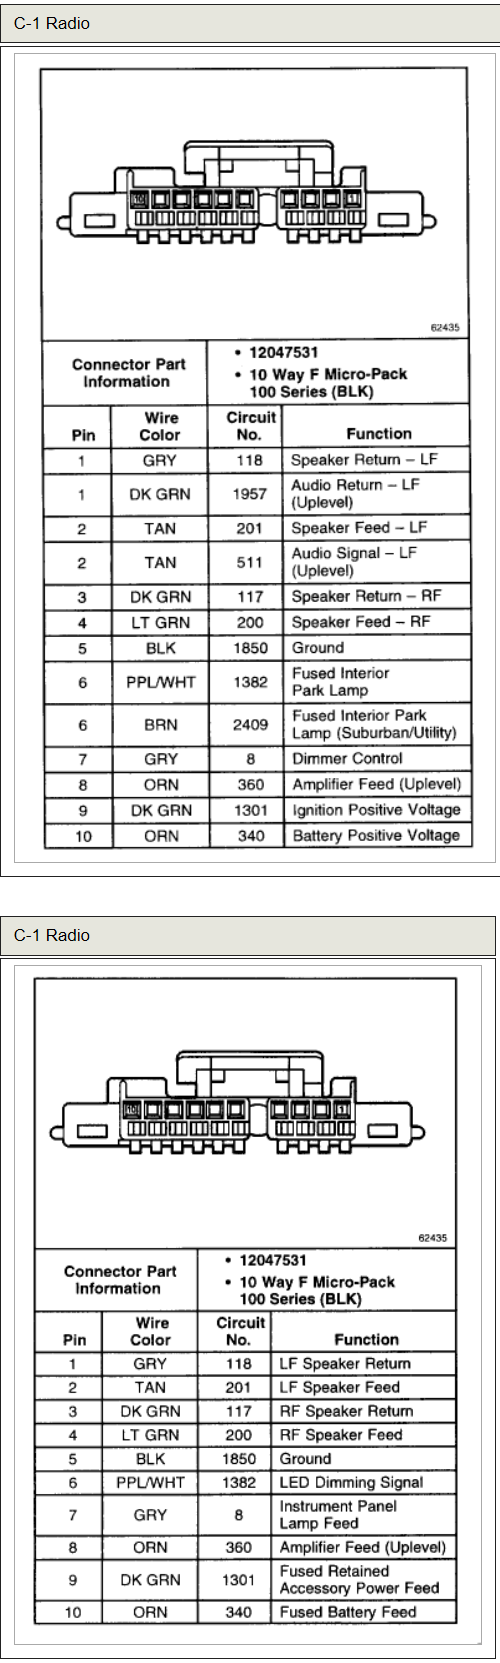 Chevrolet Tahoe LS 2000 stereo wiring connector 2 2008 chevy tahoe wiring diagram chevy colorado turn signal relay 2008 chevy malibu car stereo wiring diagram at bakdesigns.co